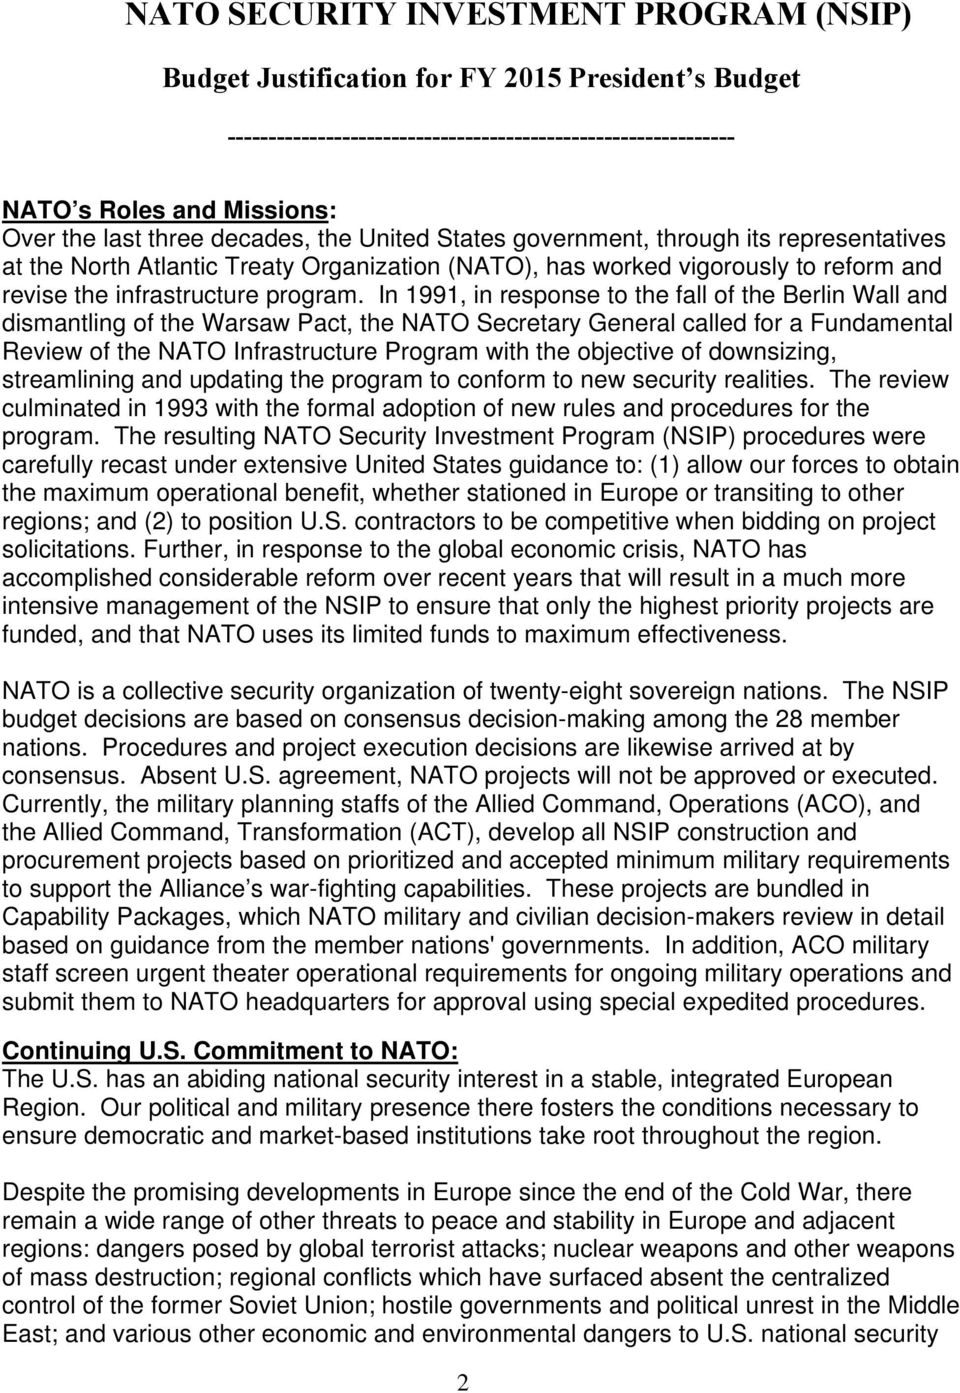 In 1991, in response to the fall of the Berlin Wall and dismantling of the Warsaw Pact, the NATO Secretary General called for a Fundamental Review of the NATO Infrastructure Program with the